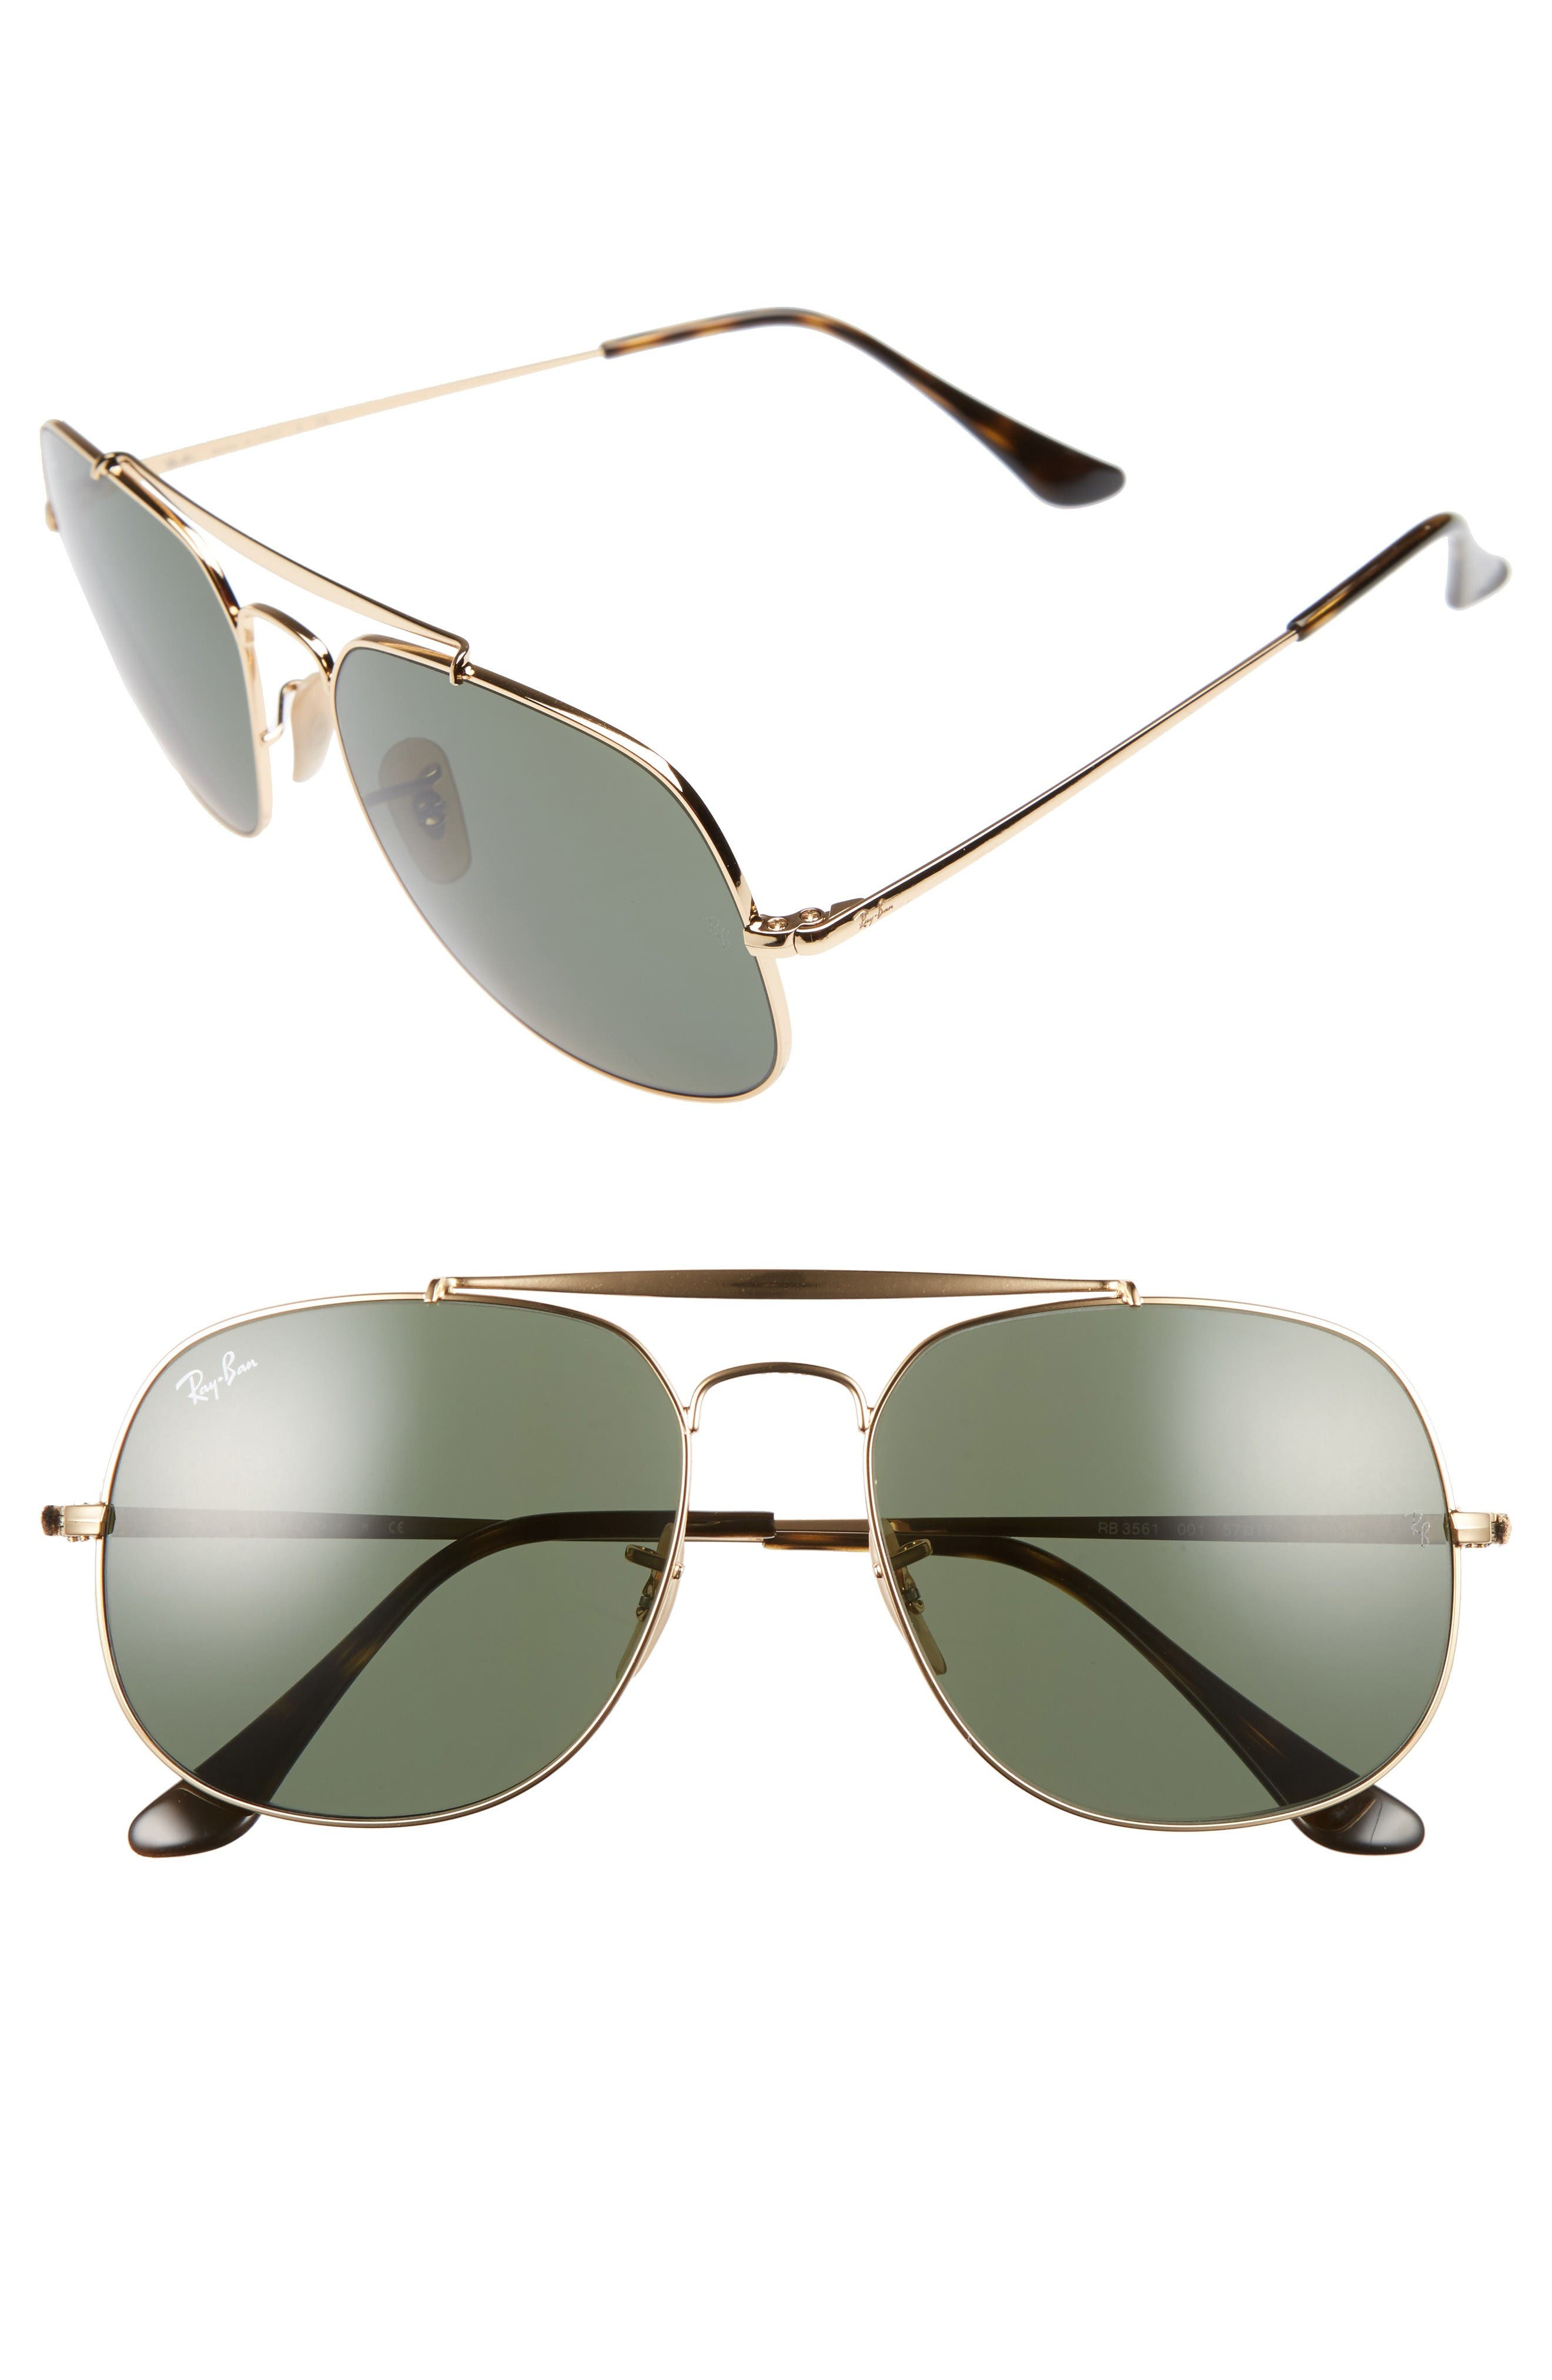 Ray-Ban The General 57mm Aviator Sunglasses